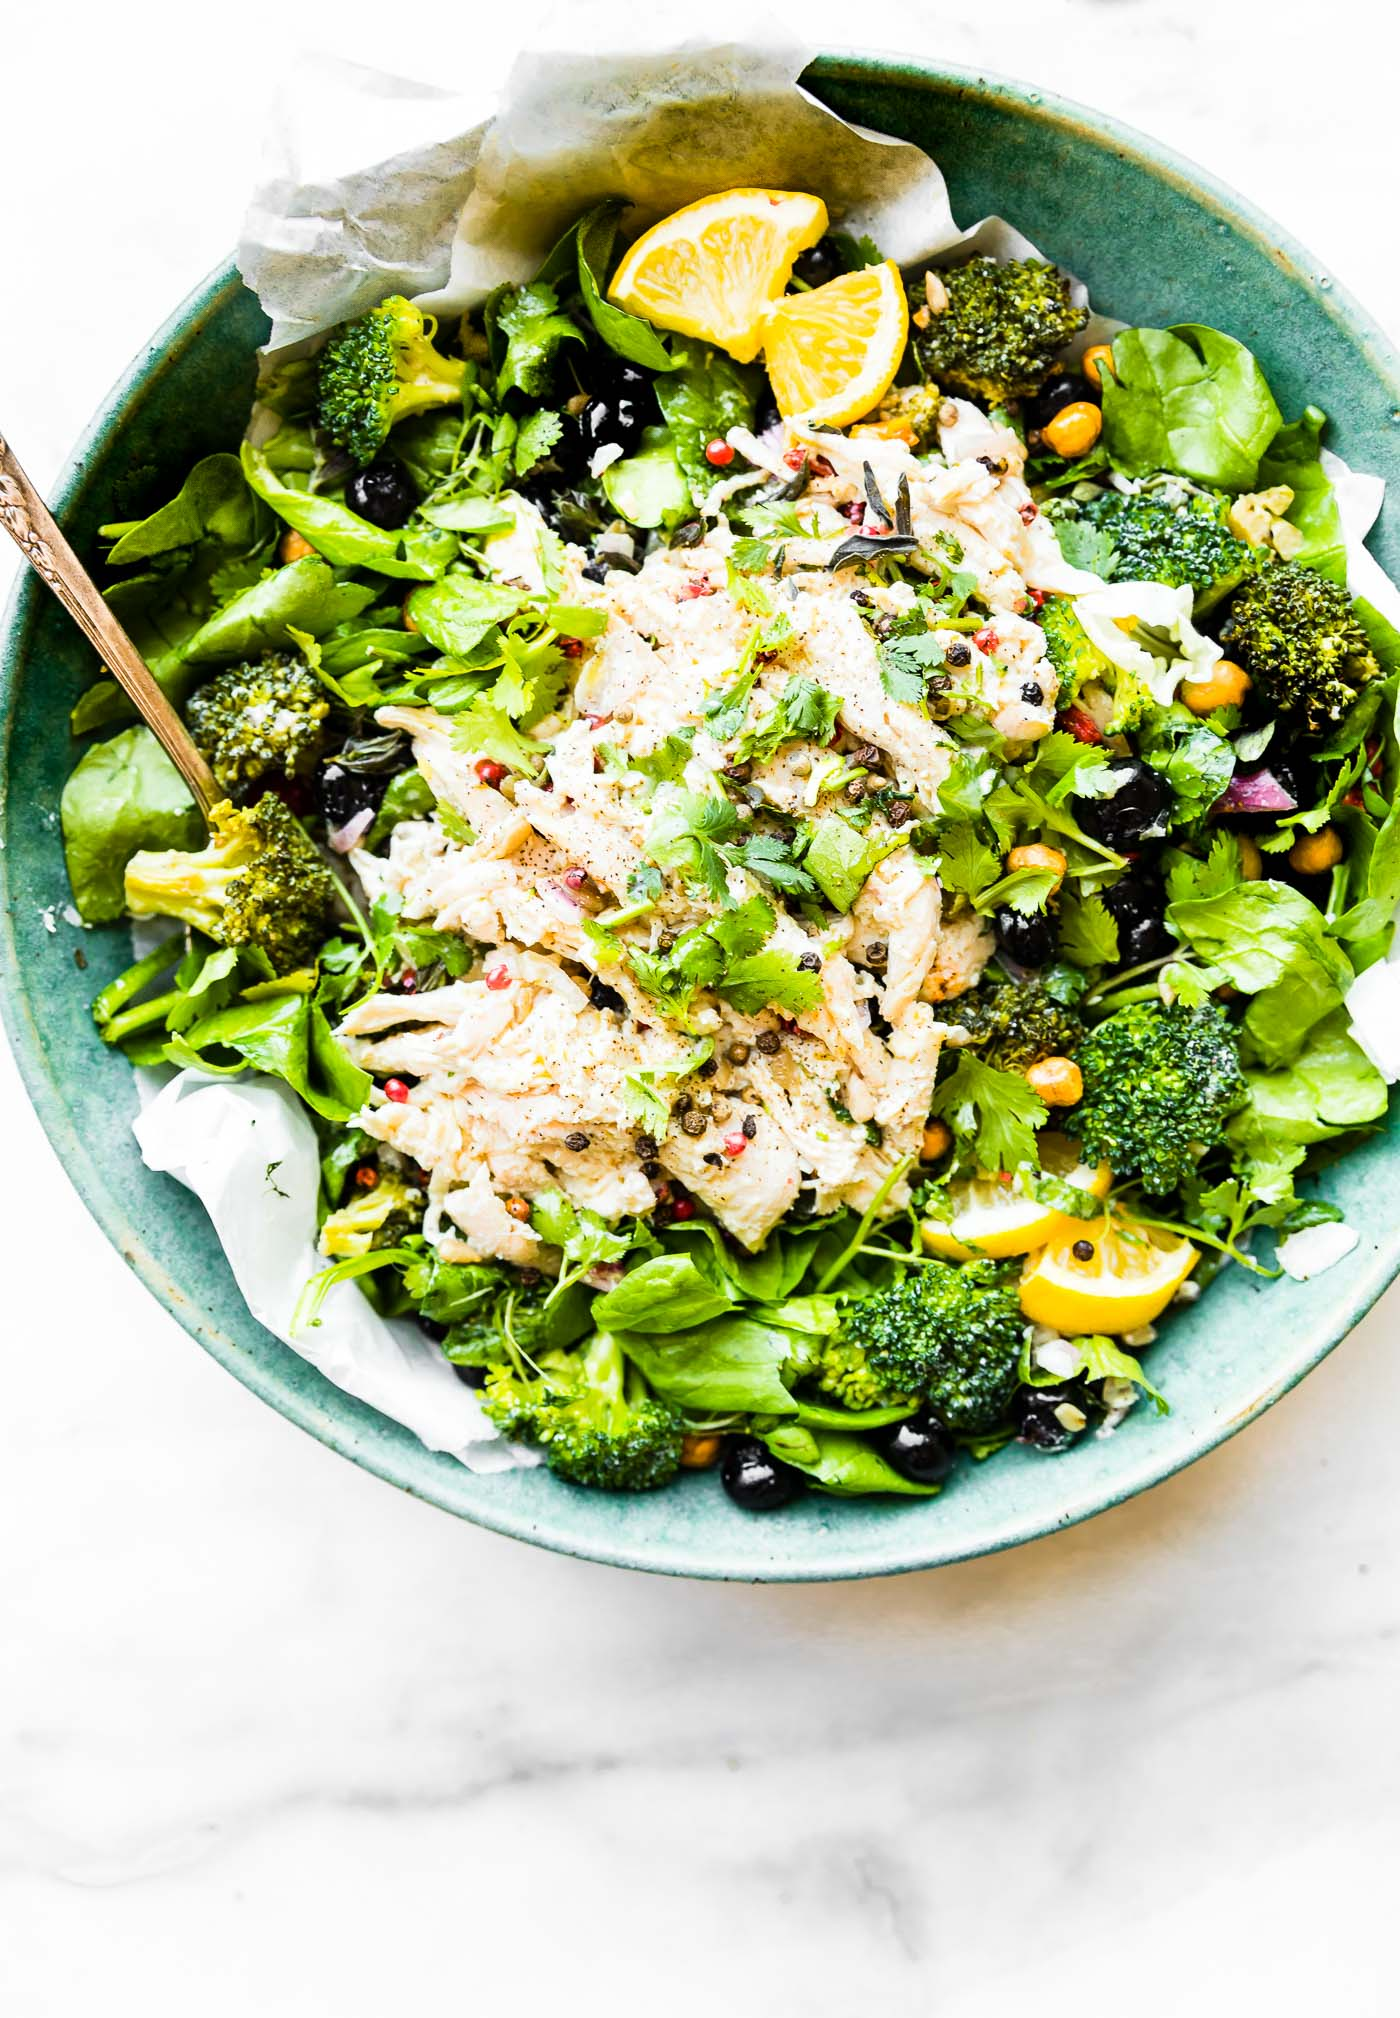 A lightened up Mayo Free Chicken Salad bowl